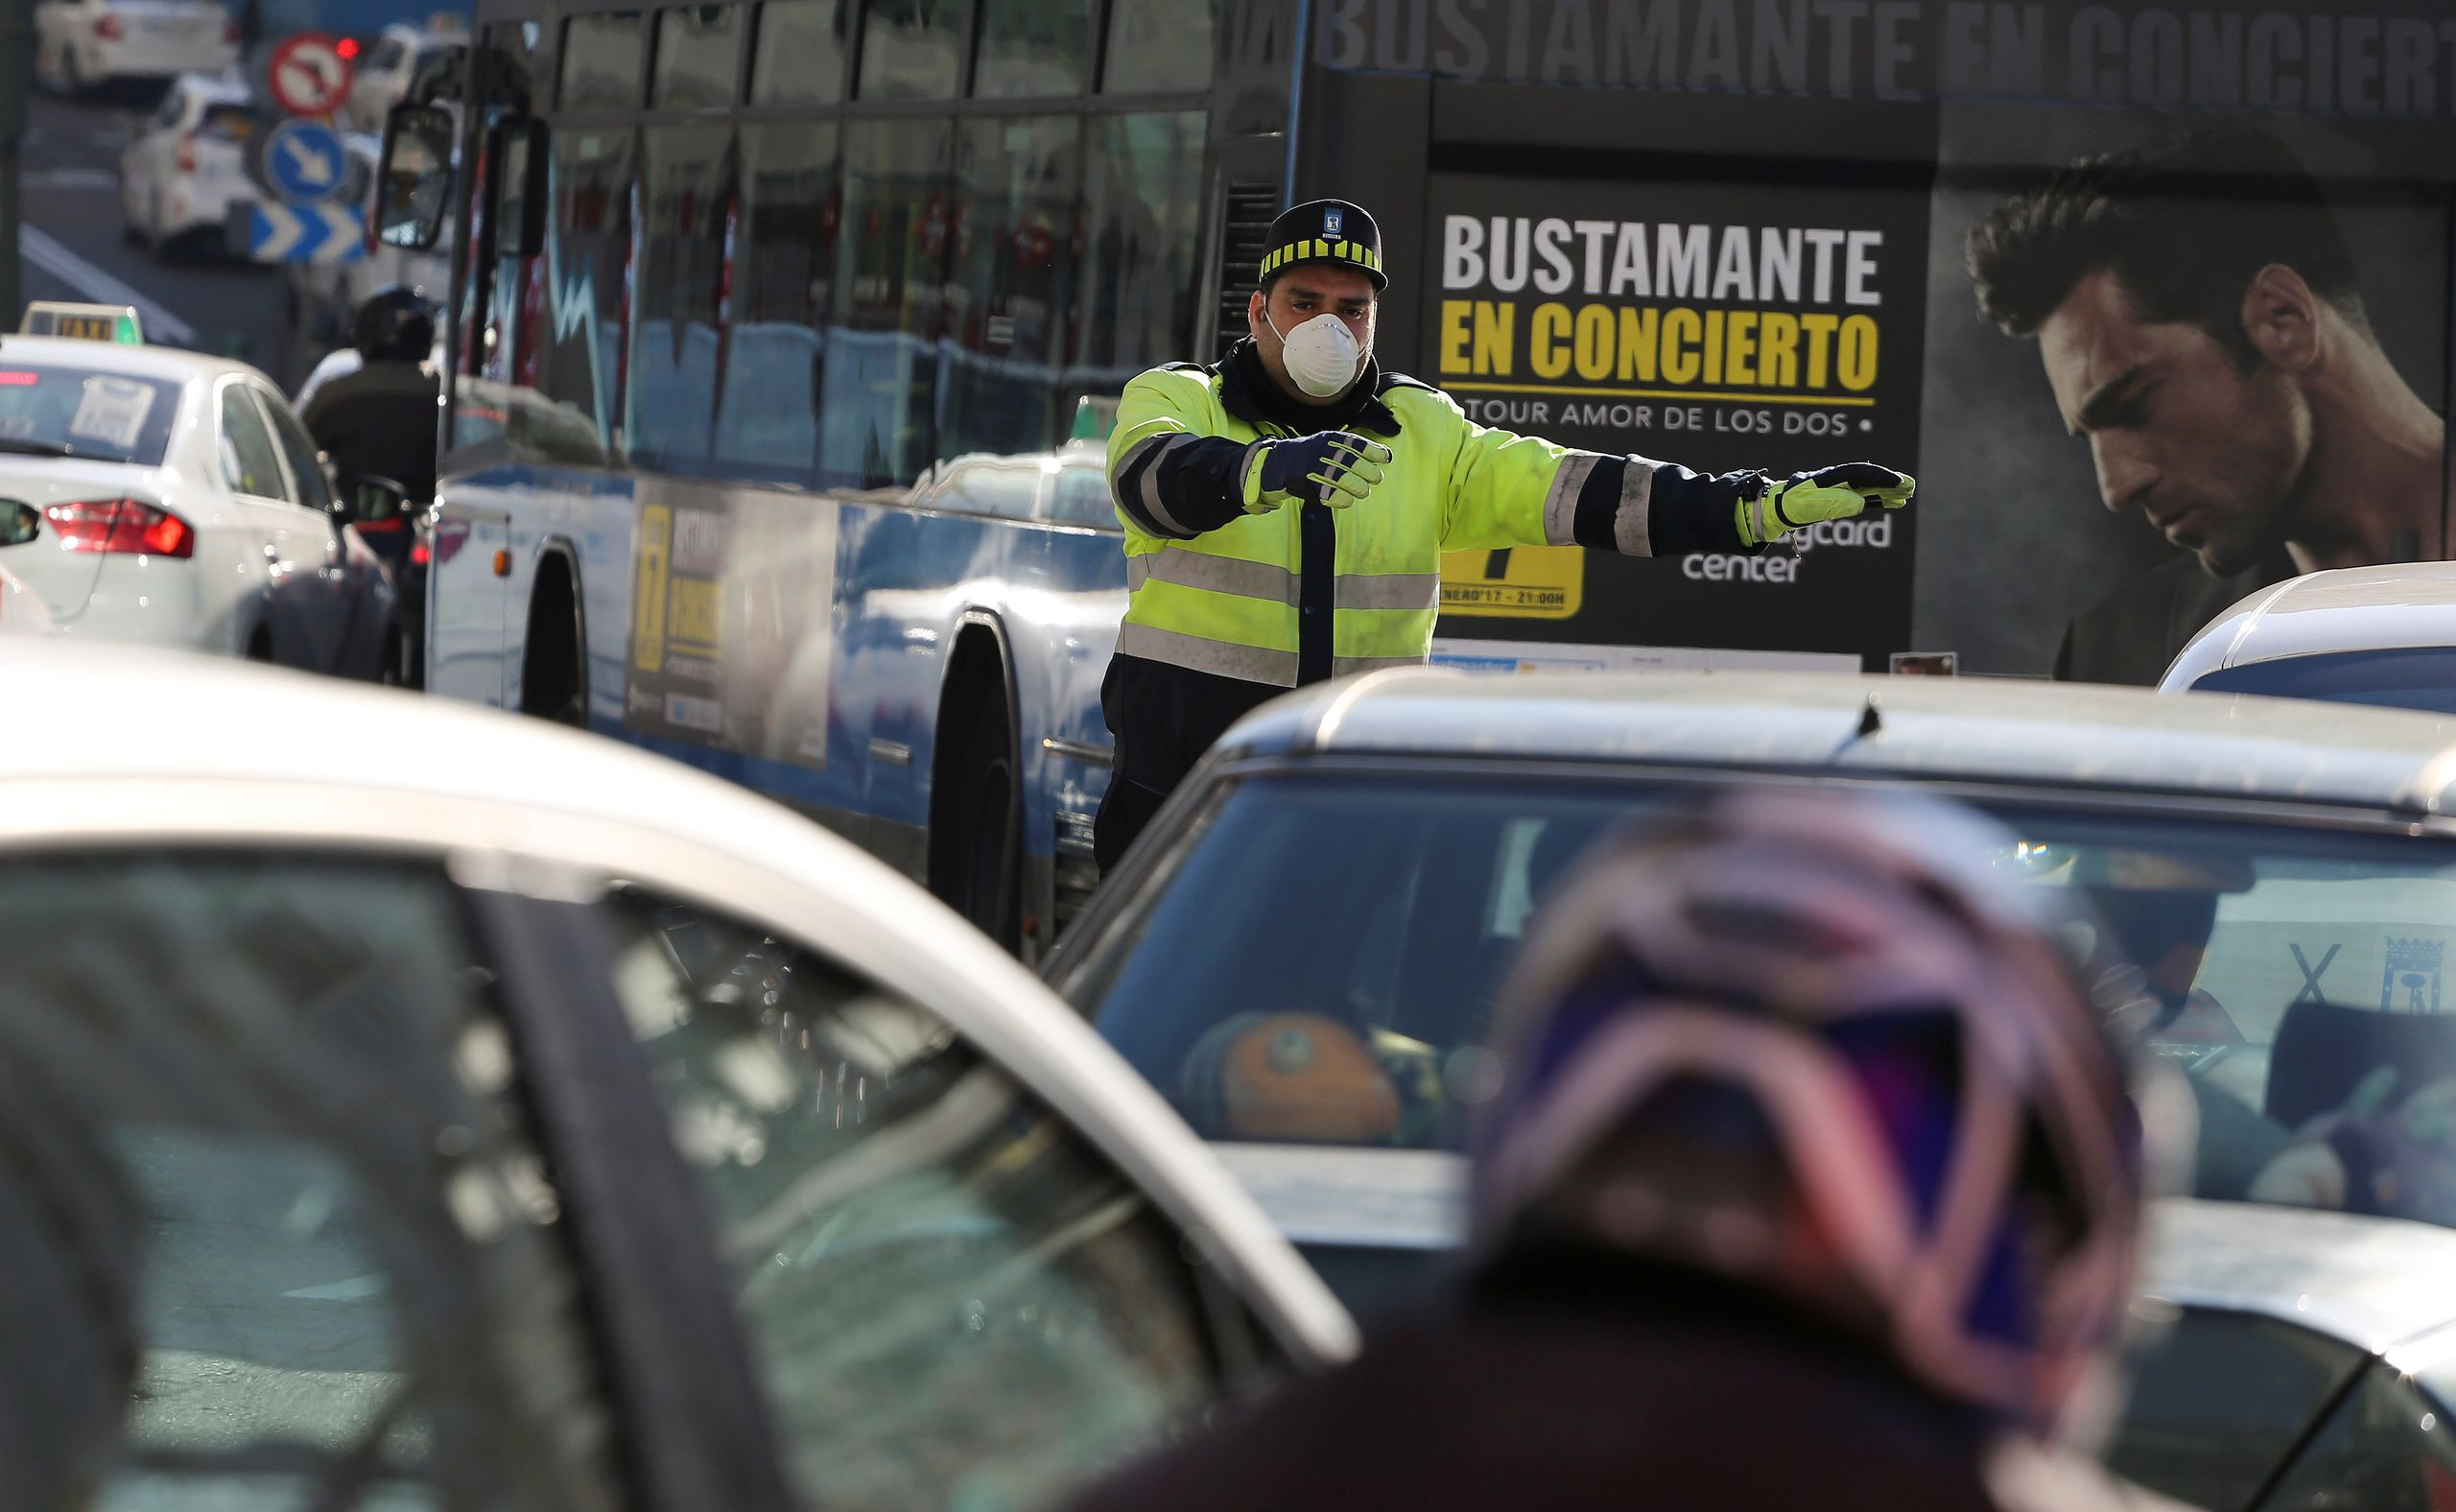 A traffic policeman wears a mask while directing traffic in Madrid on Dec. 29, 2016.